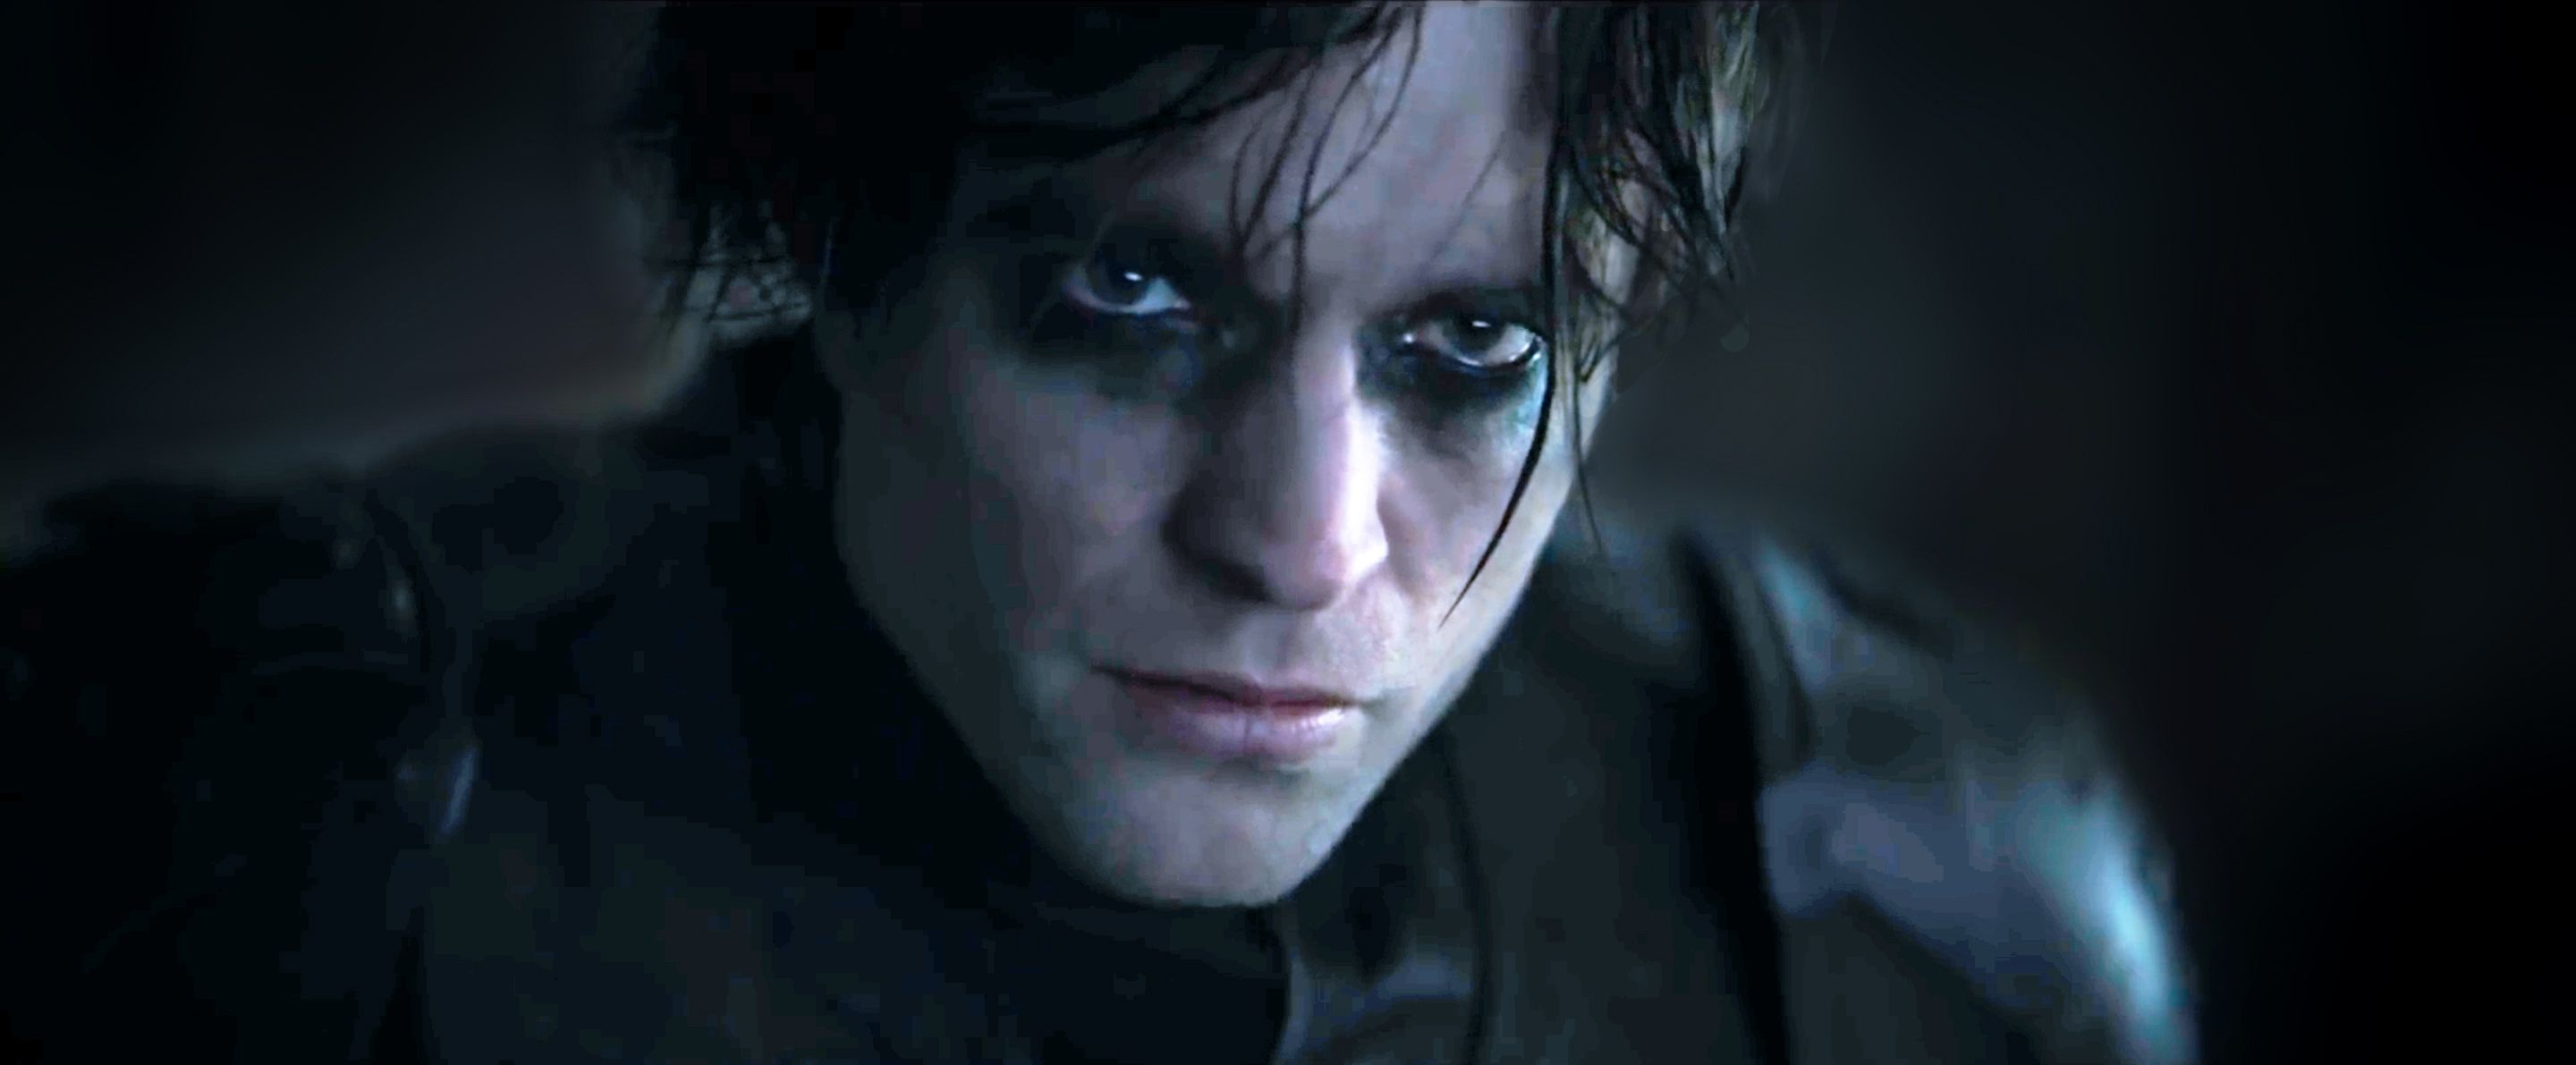 Watch Robert Pattinson as Batman in in the First 'The Batman' Trailer